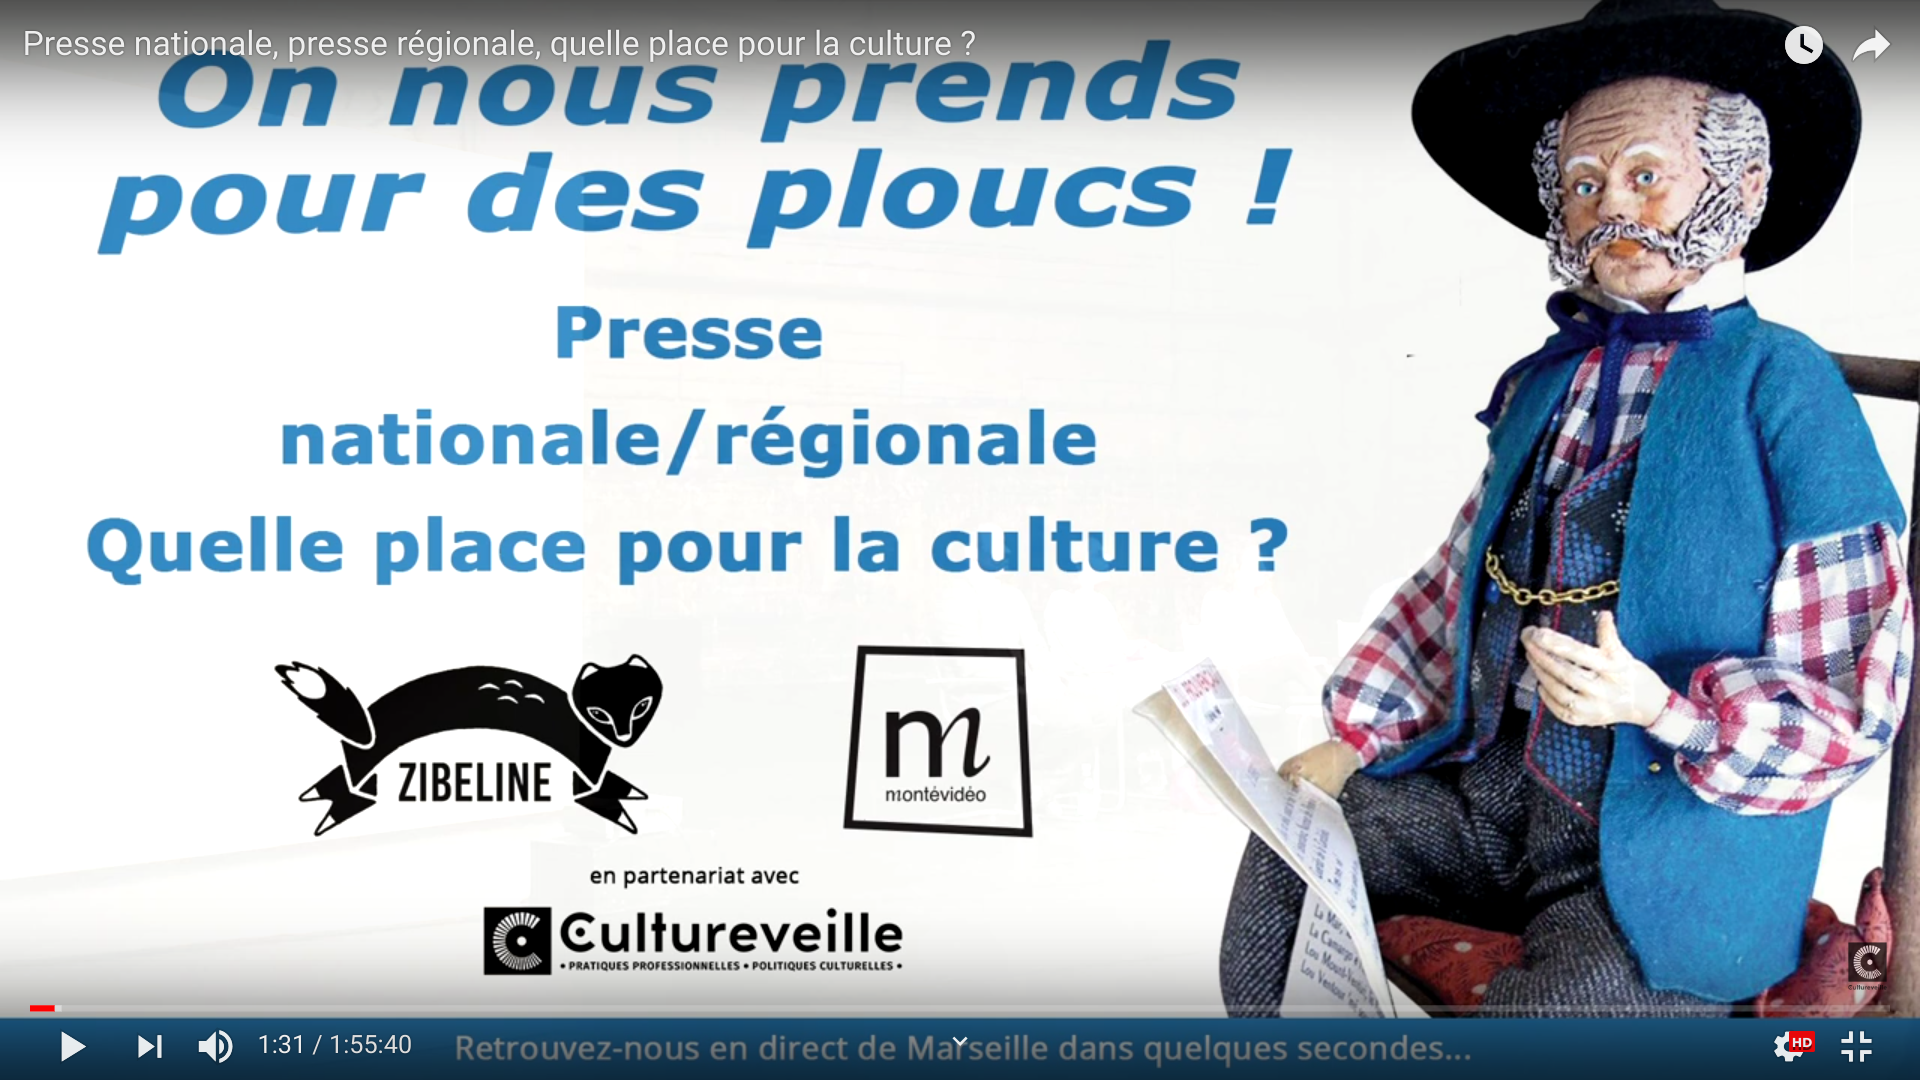 Presse nationale, presse régionale, quelle place pour la culture ?